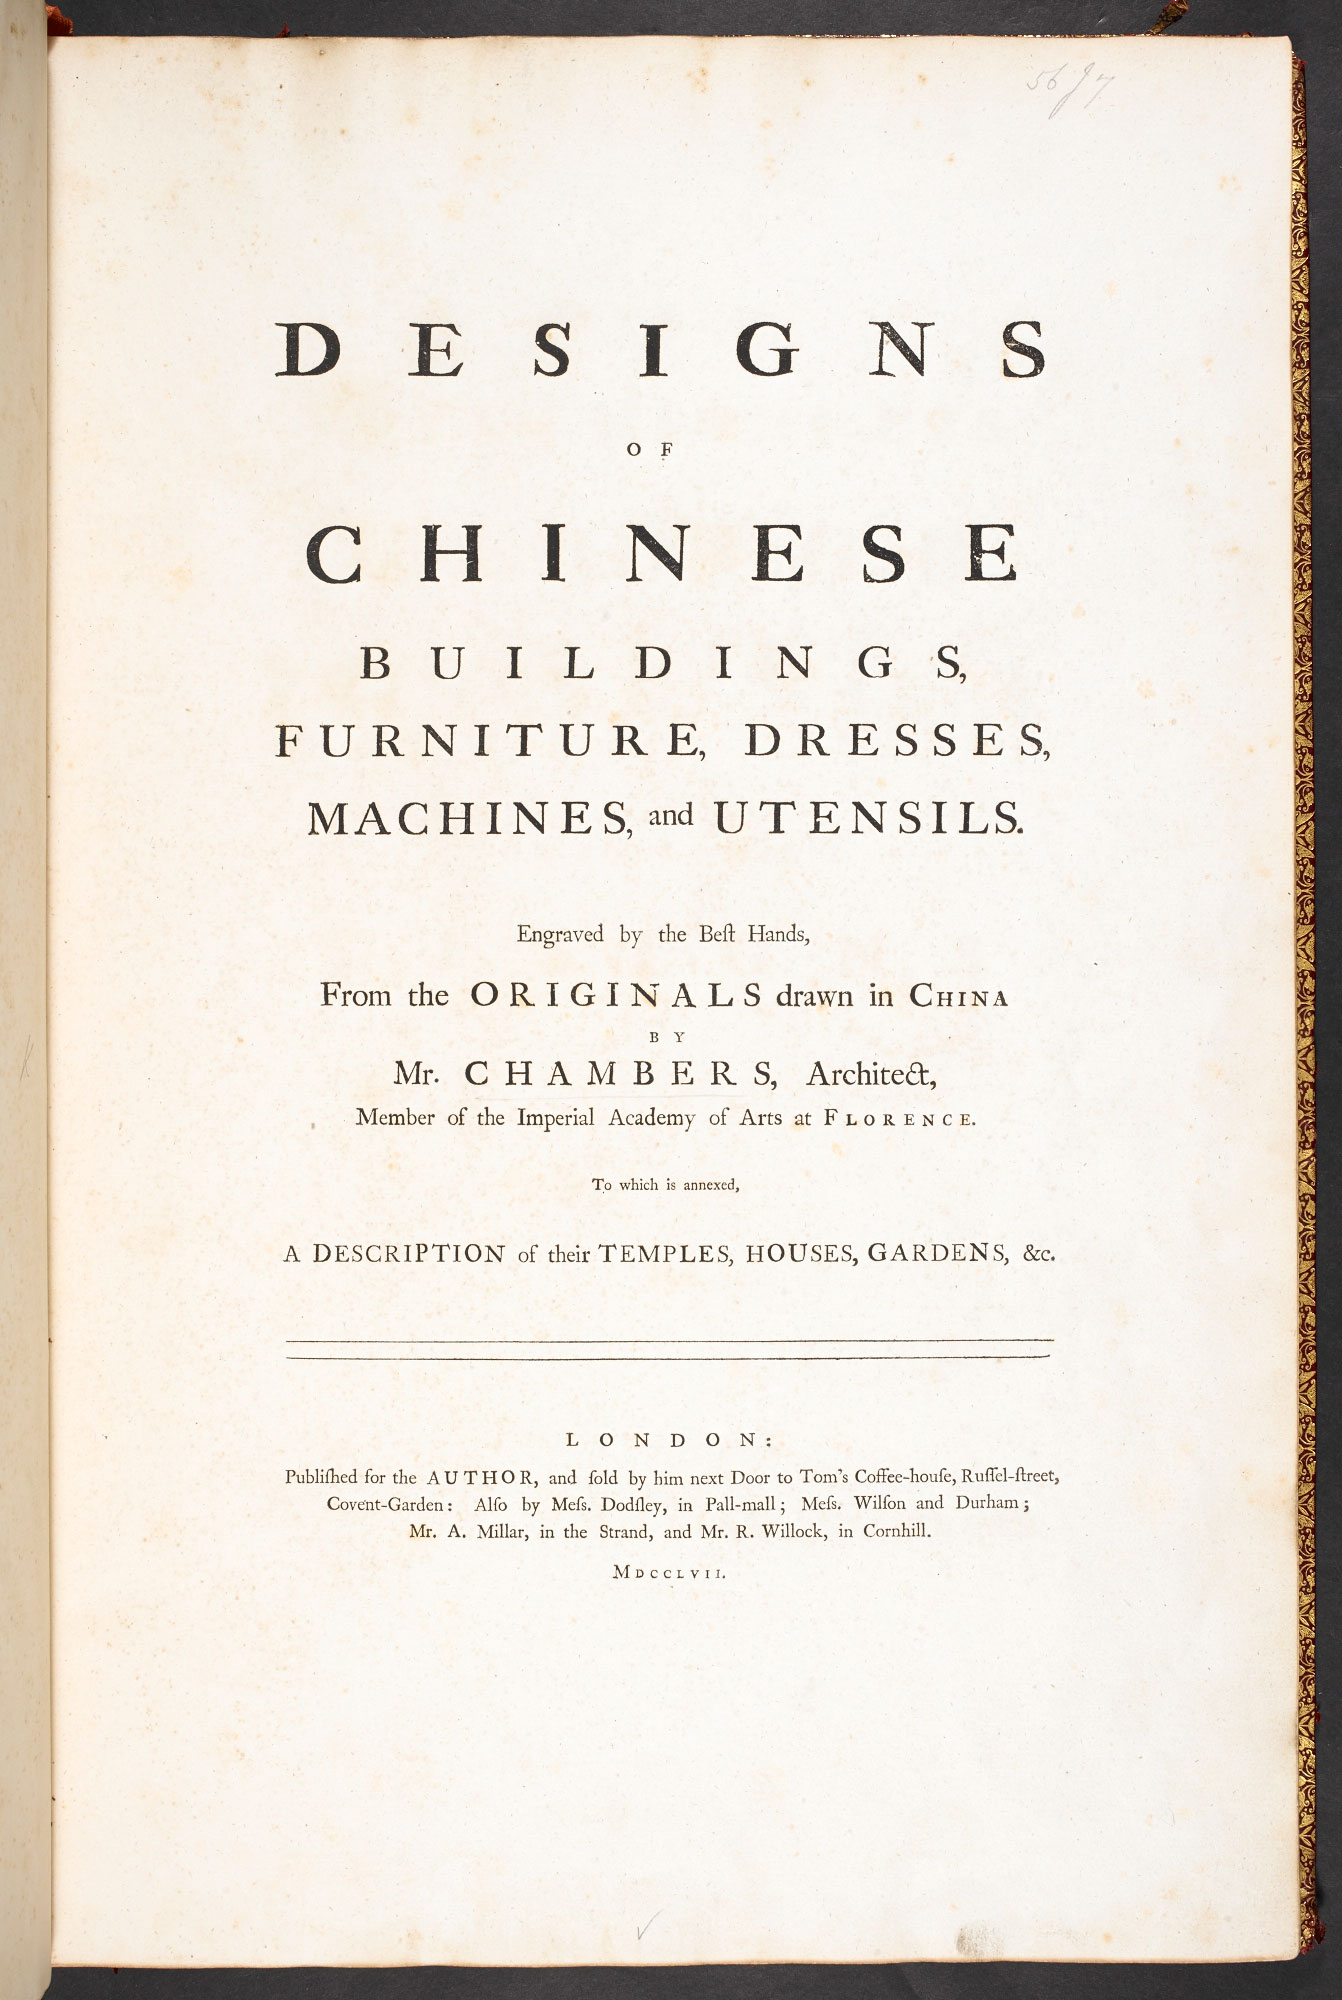 Designs of Chinese Buildings and Furniture